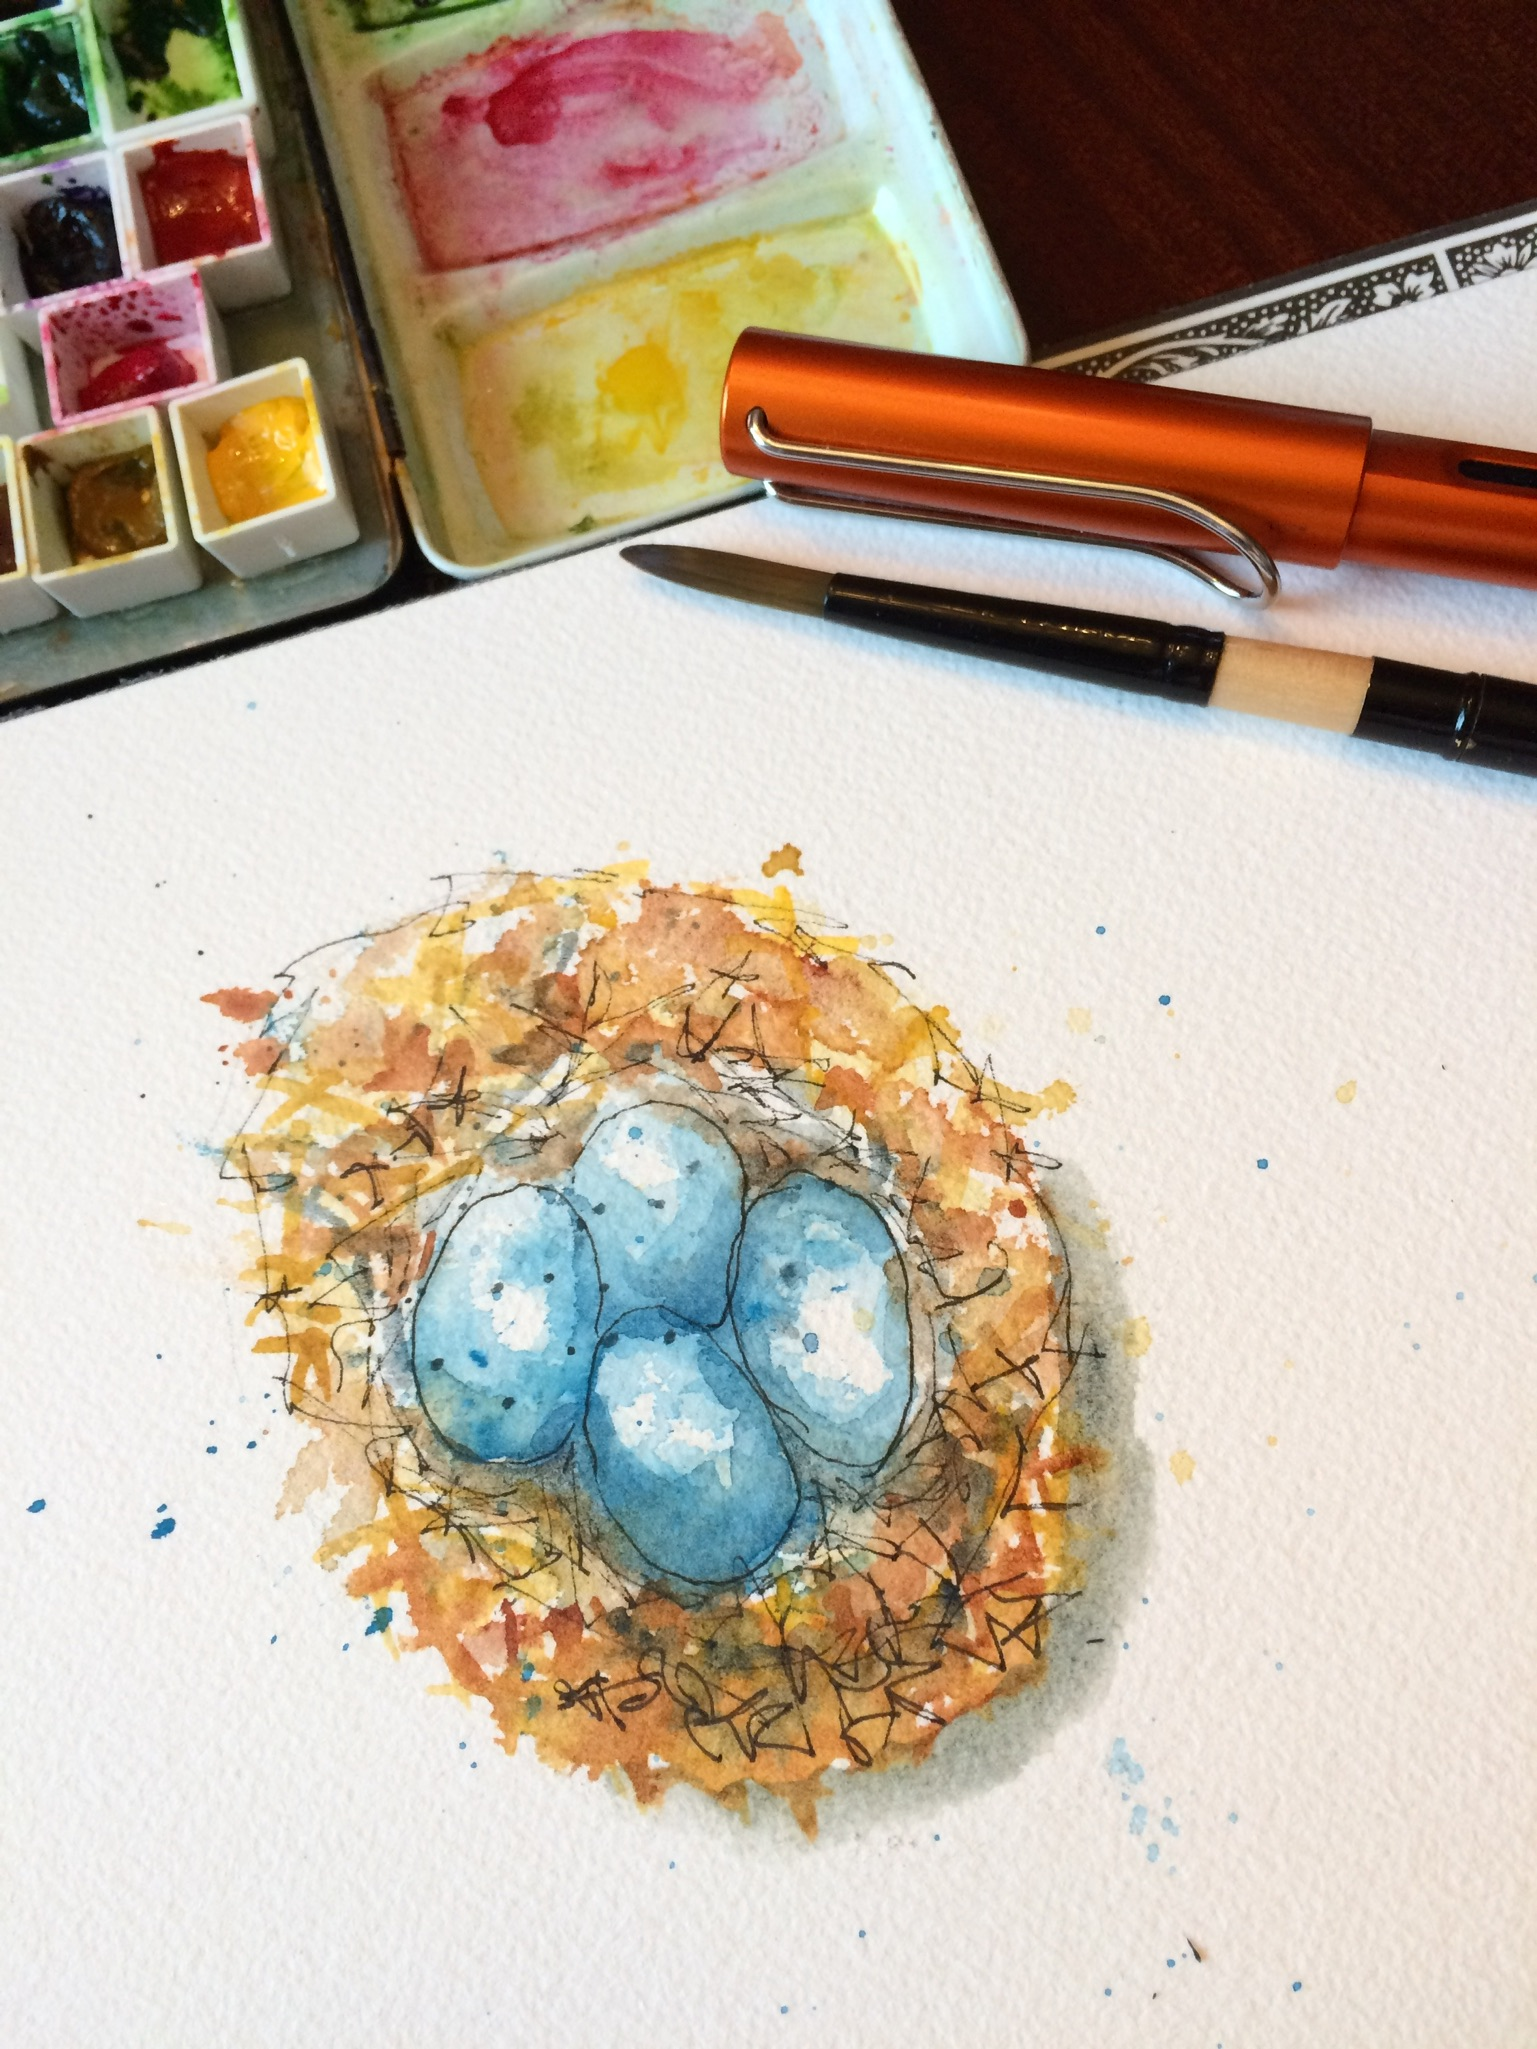 Robins nest with eggs